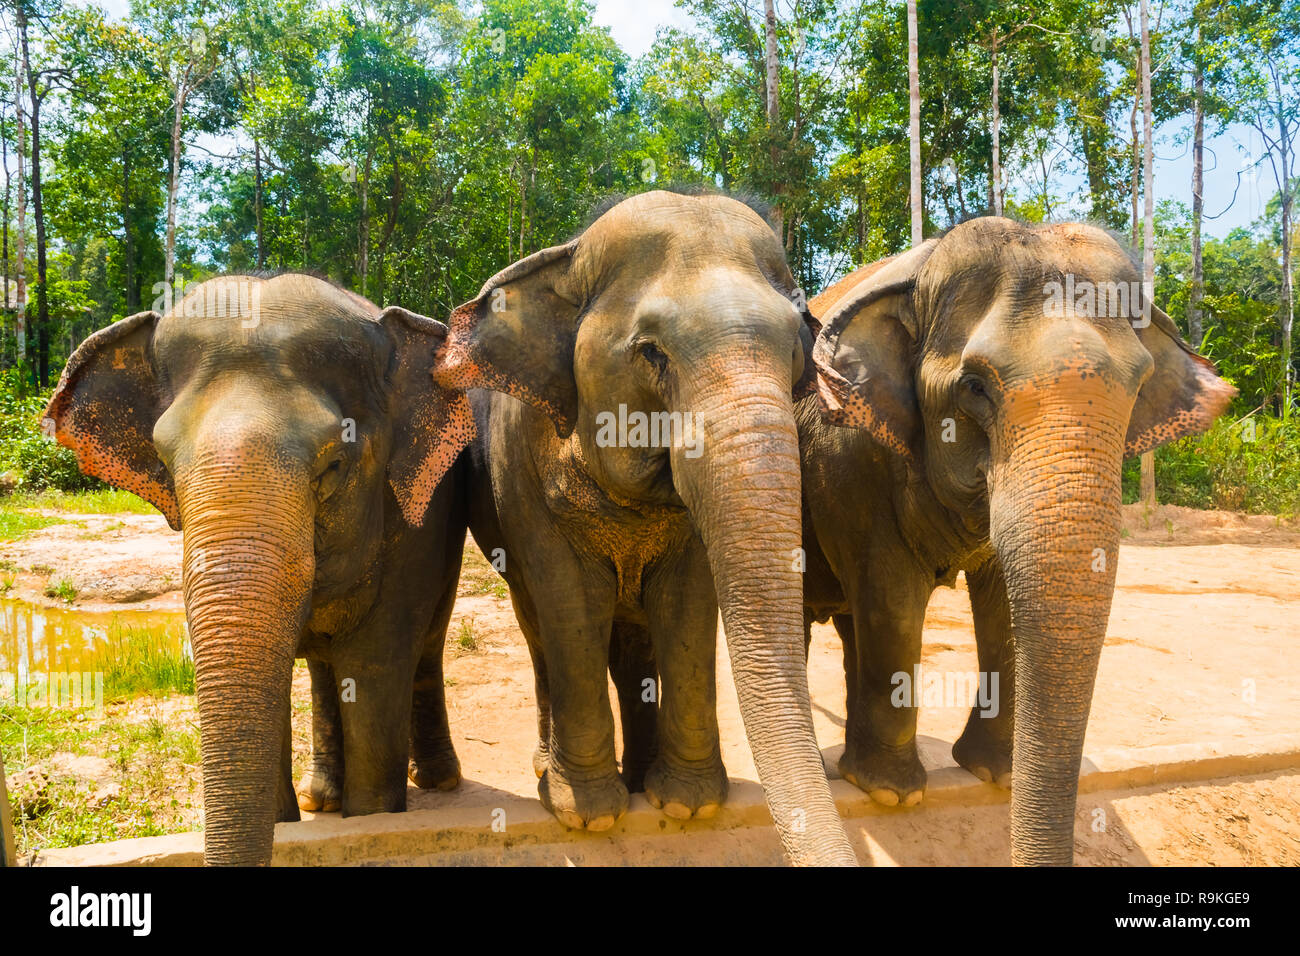 Group of Three Elephants at Vinpearl Safari Phu Quoc park with exotic flora and fauna, Phu Quoc in Vietnam - Stock Image